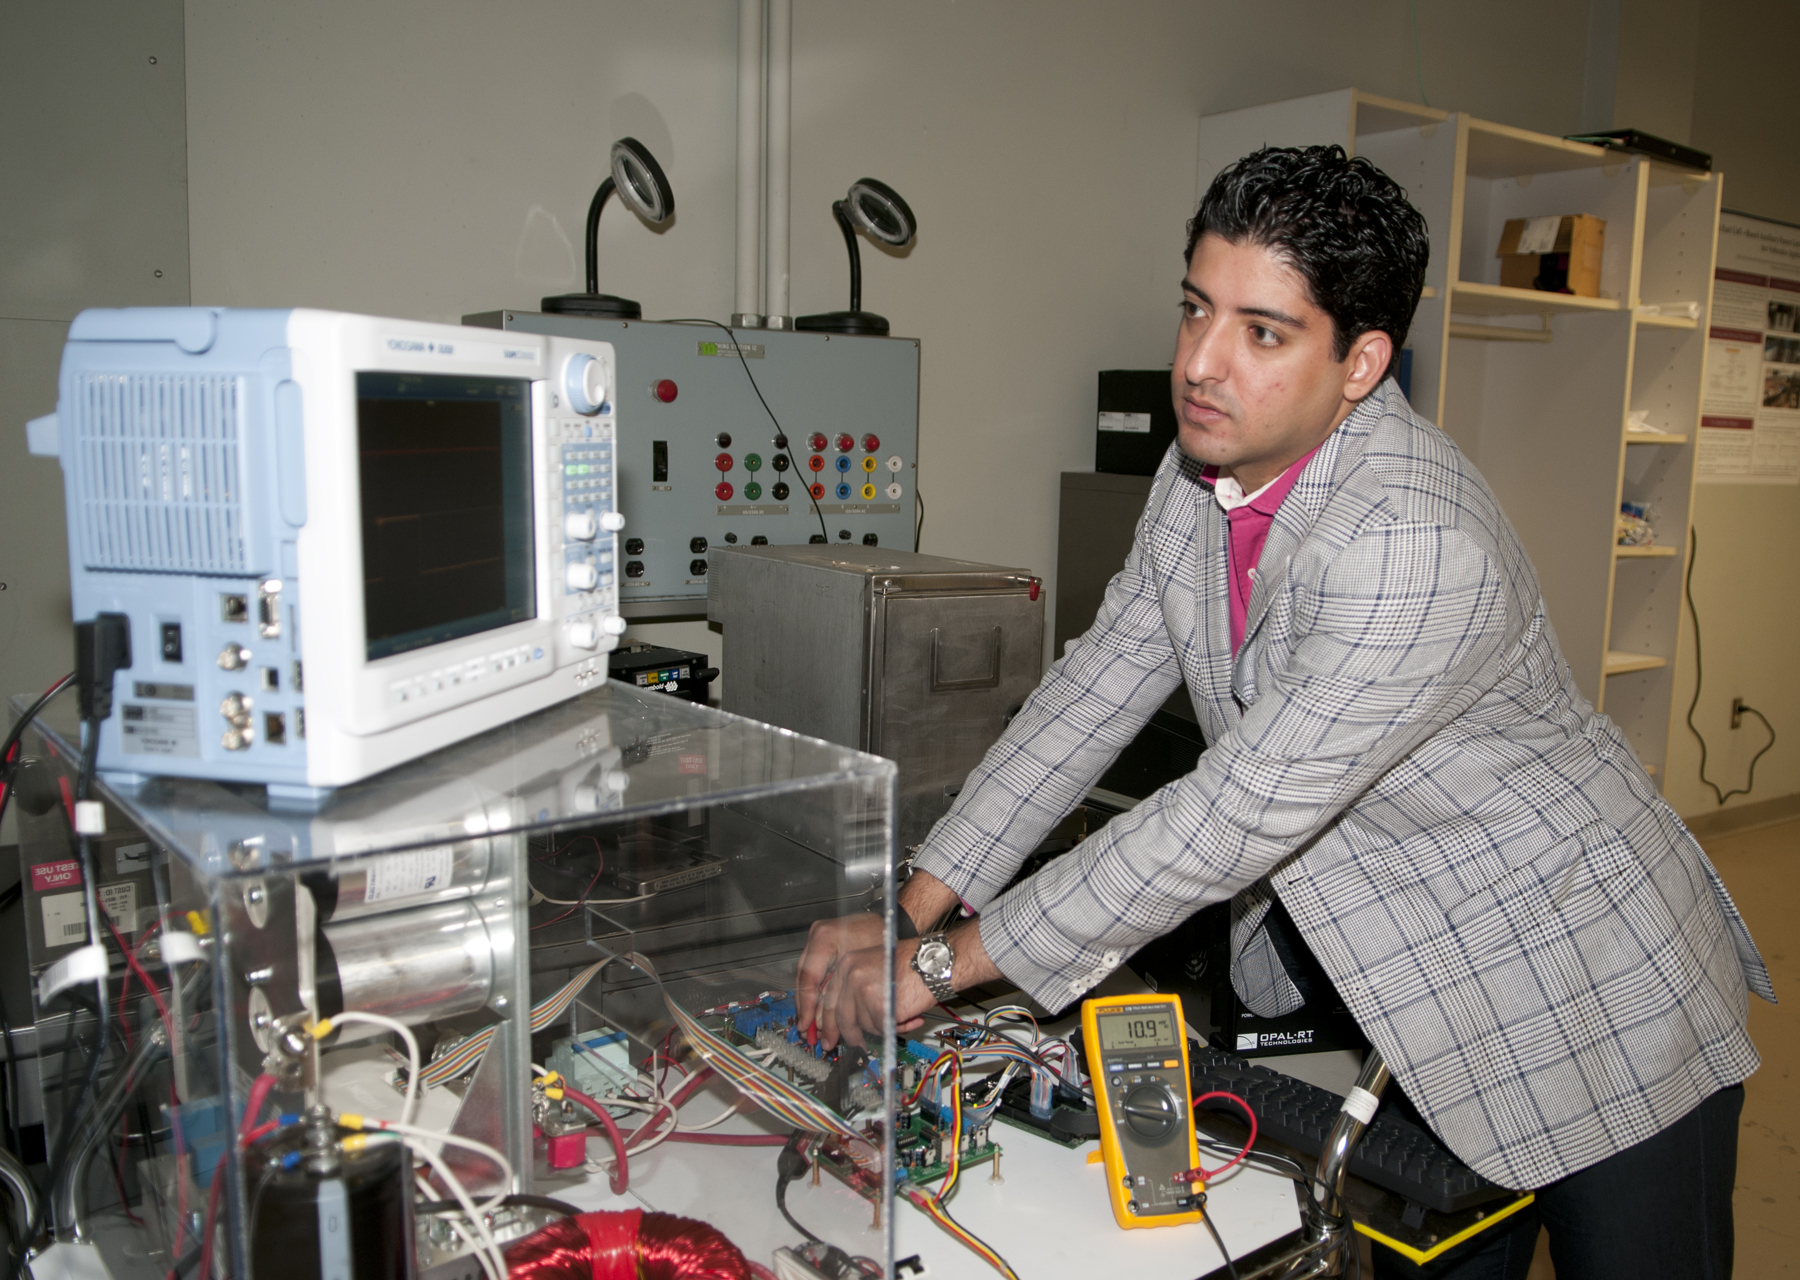 Professor Ali Mehrizi-Sani is studying microgrids to help keep the power on during catastrophic events.